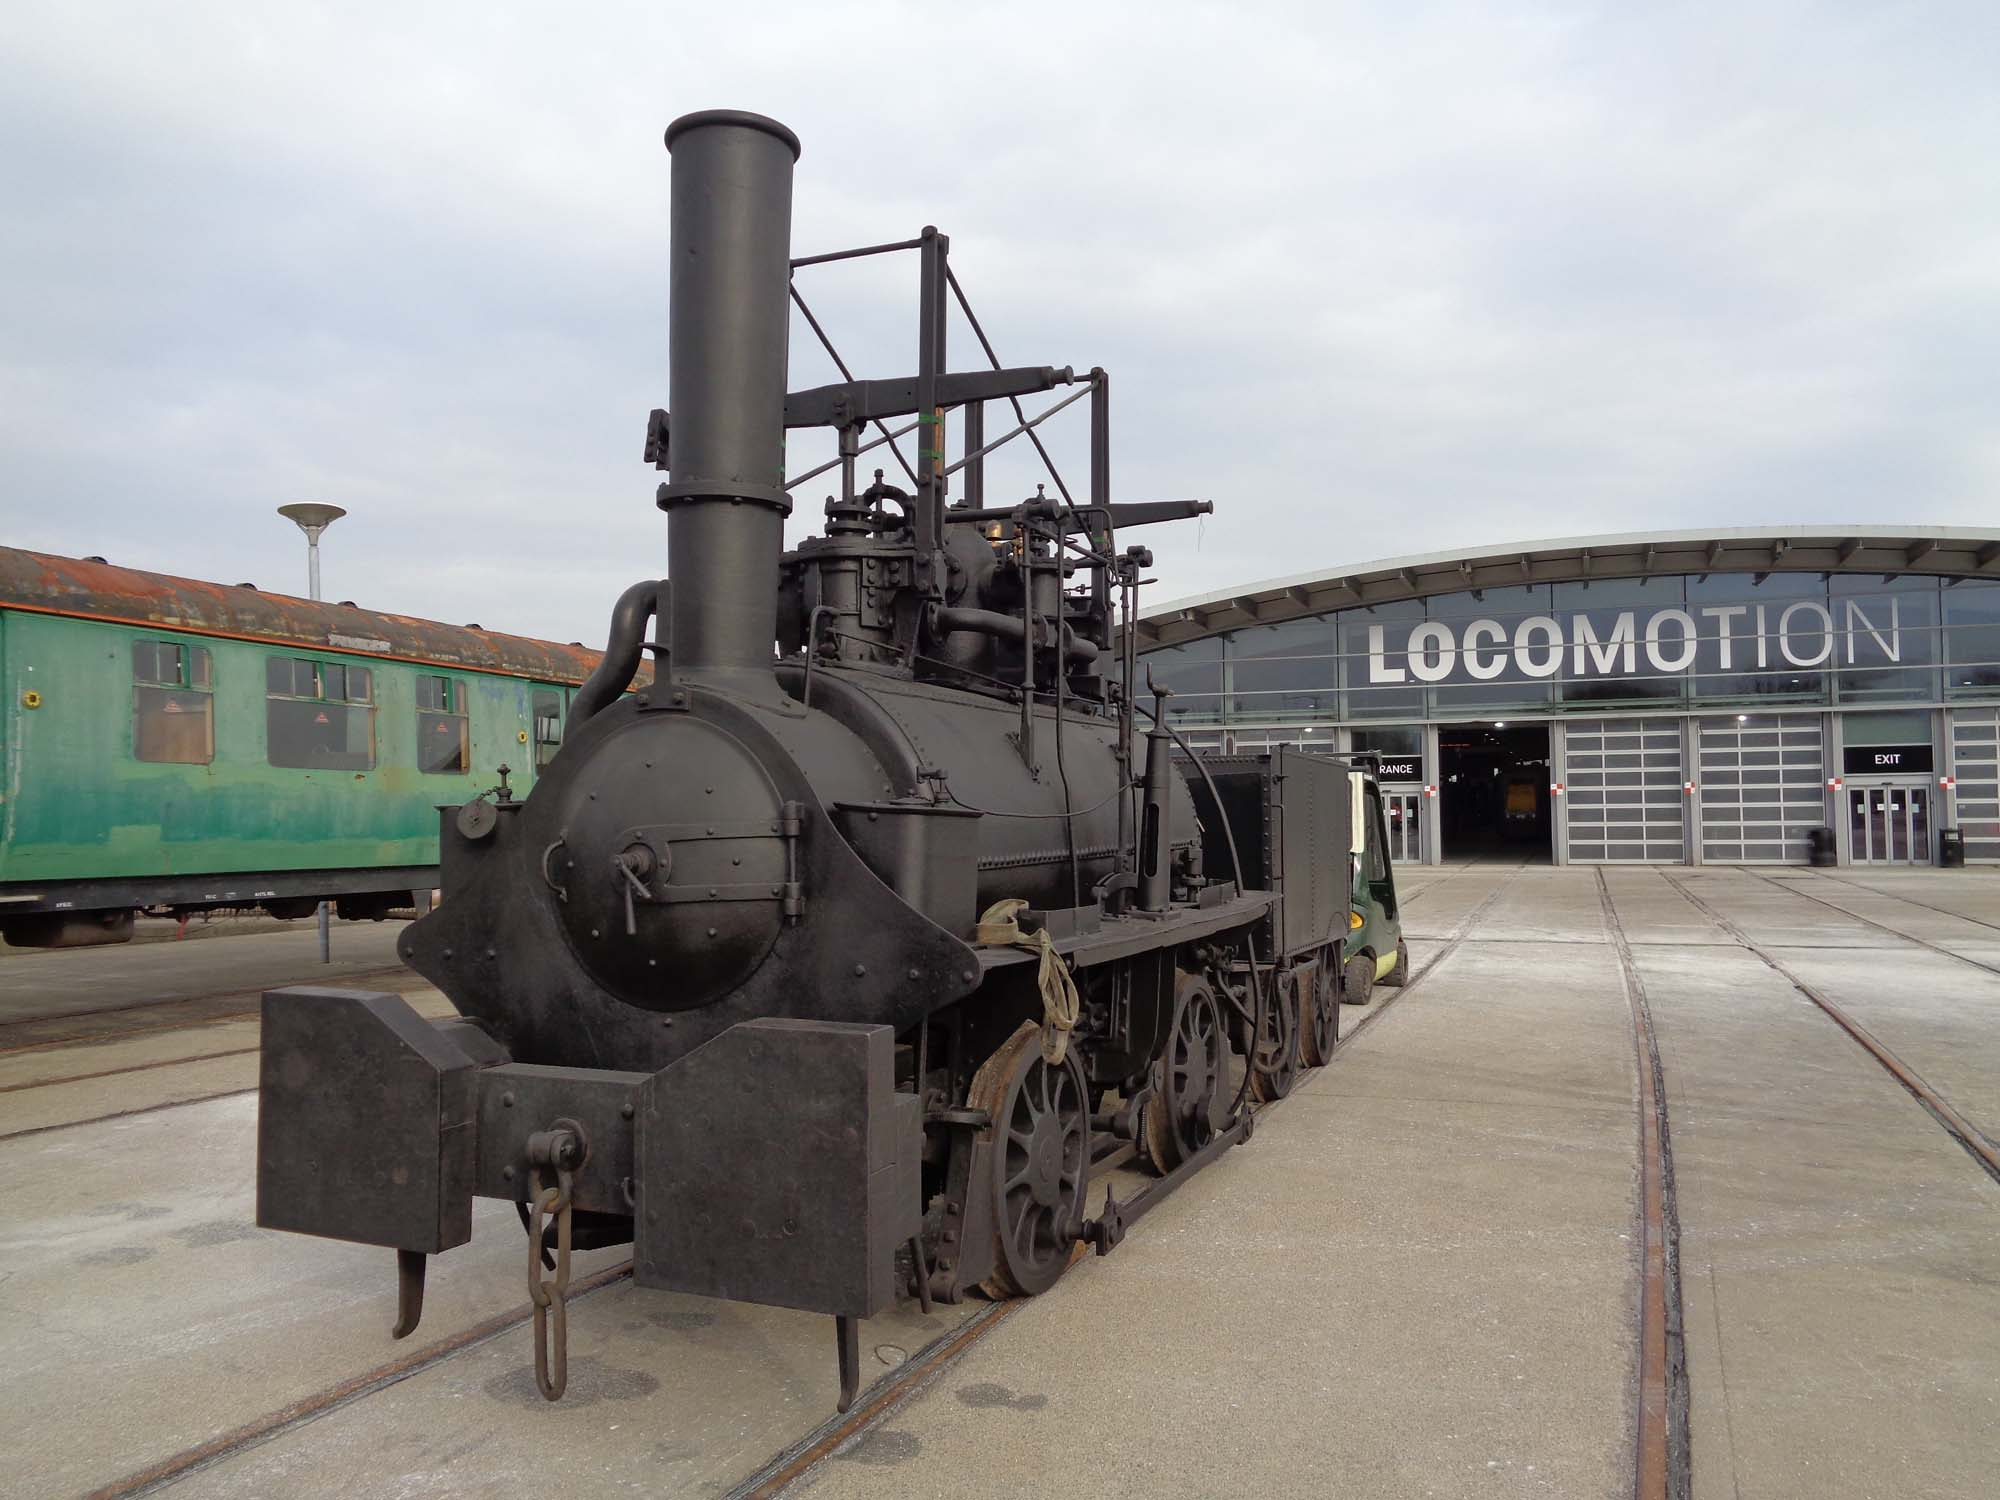 a photo of an old steam locomotive on tracks outside a shed